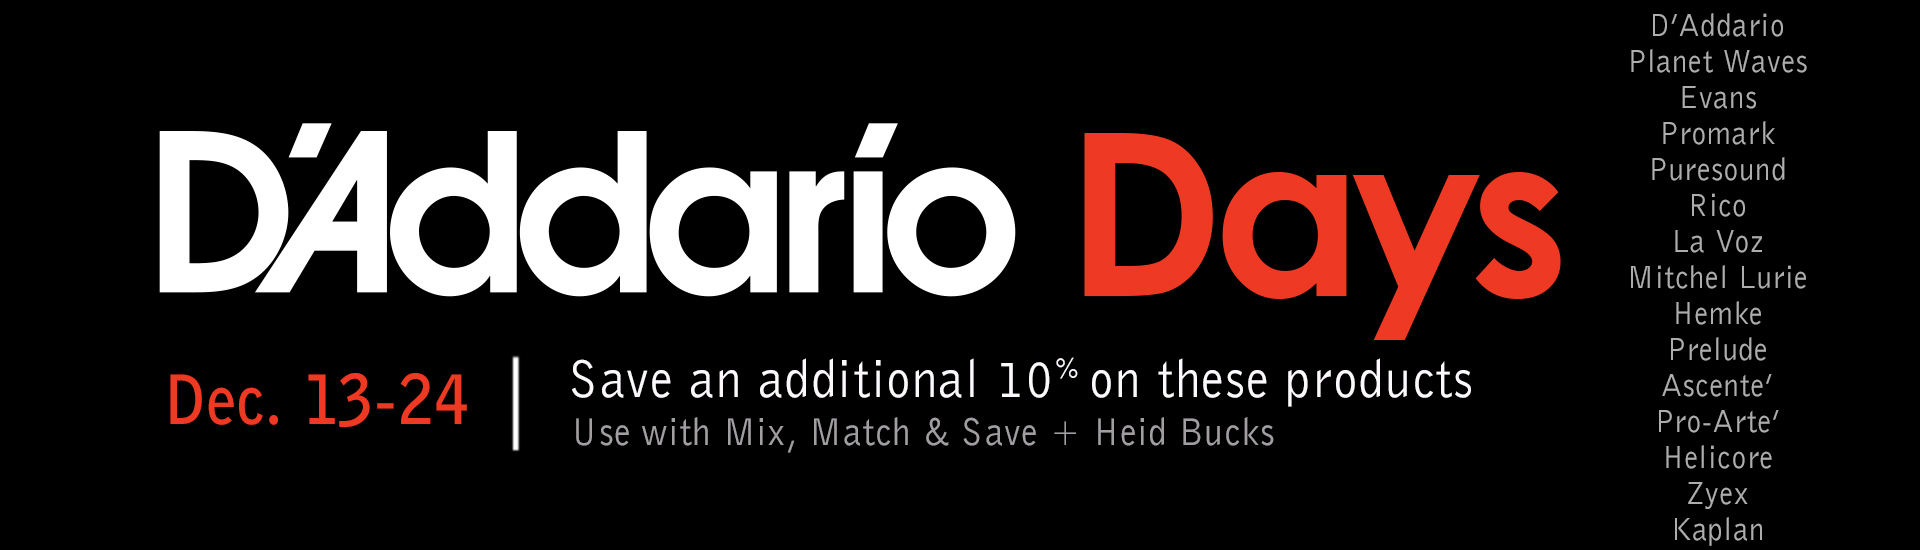 Save on D'Addario products